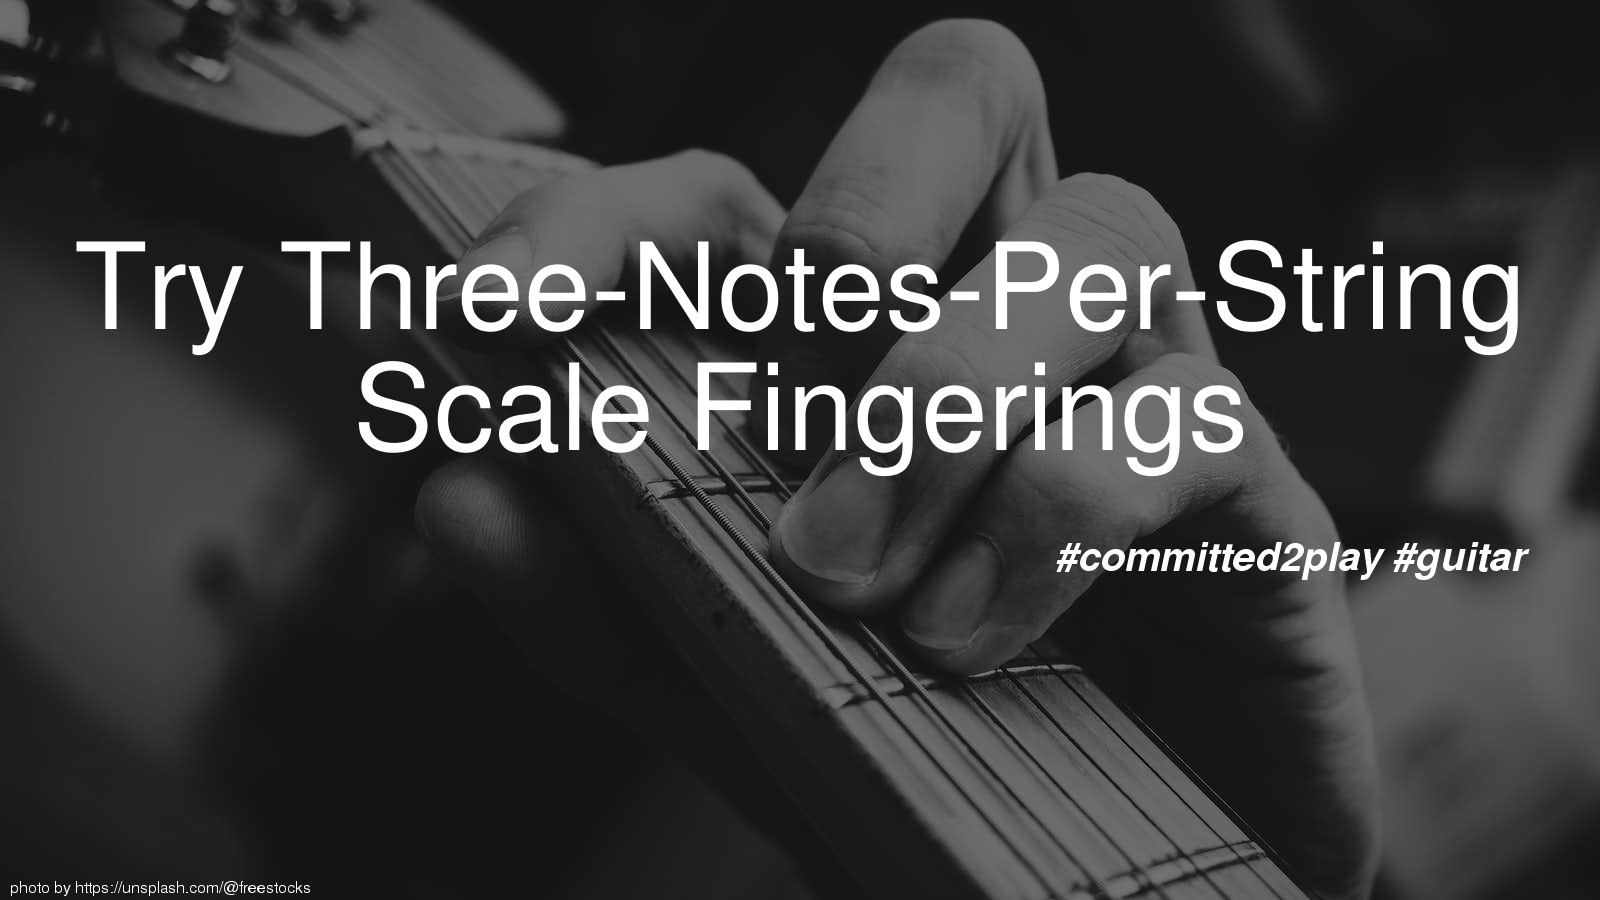 Try Three-Notes-Per-String Scale Fingerings